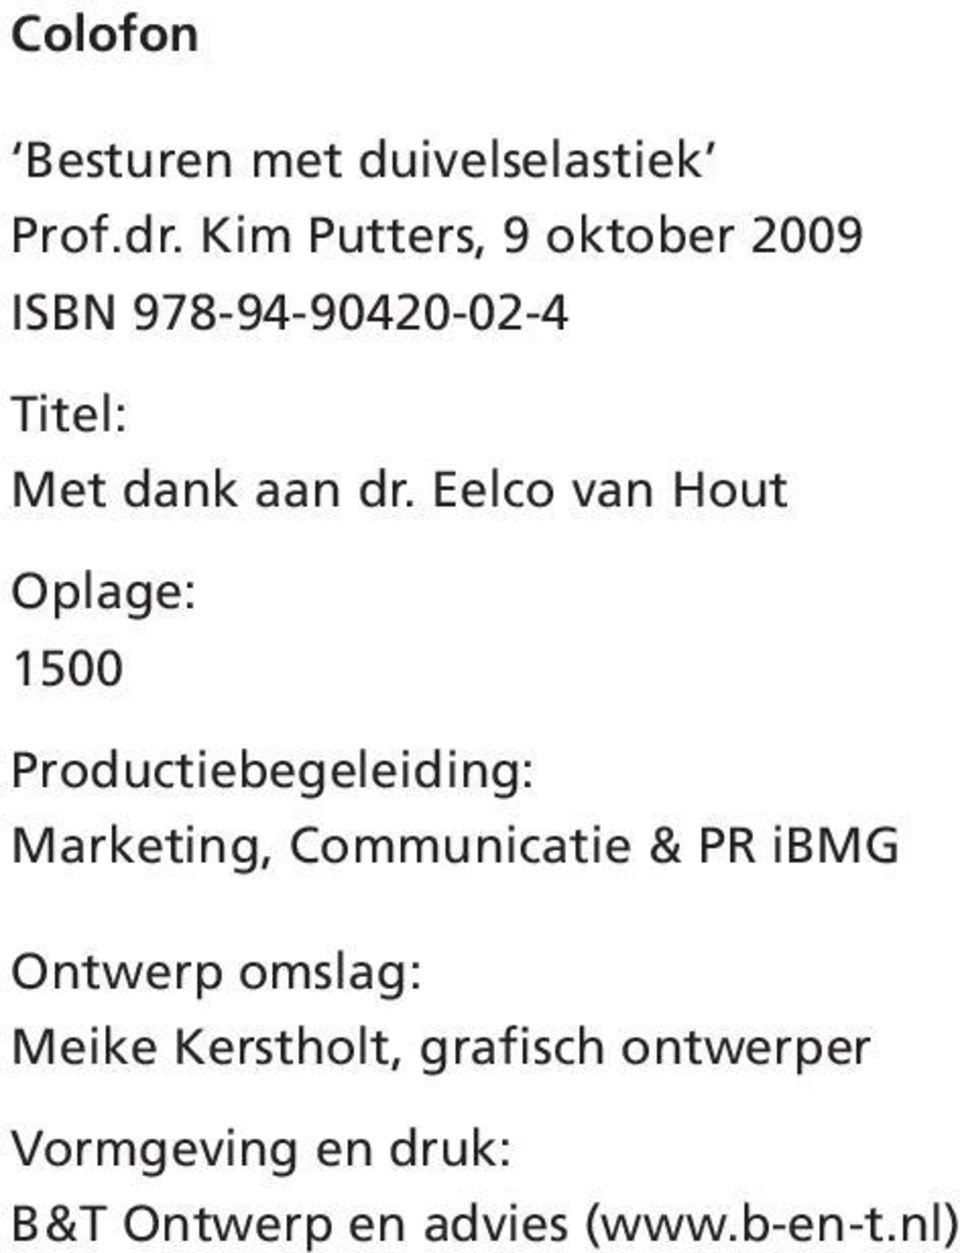 Eelco van Hout Oplage: 1500 Productiebegeleiding: Marketing, Communicatie & PR